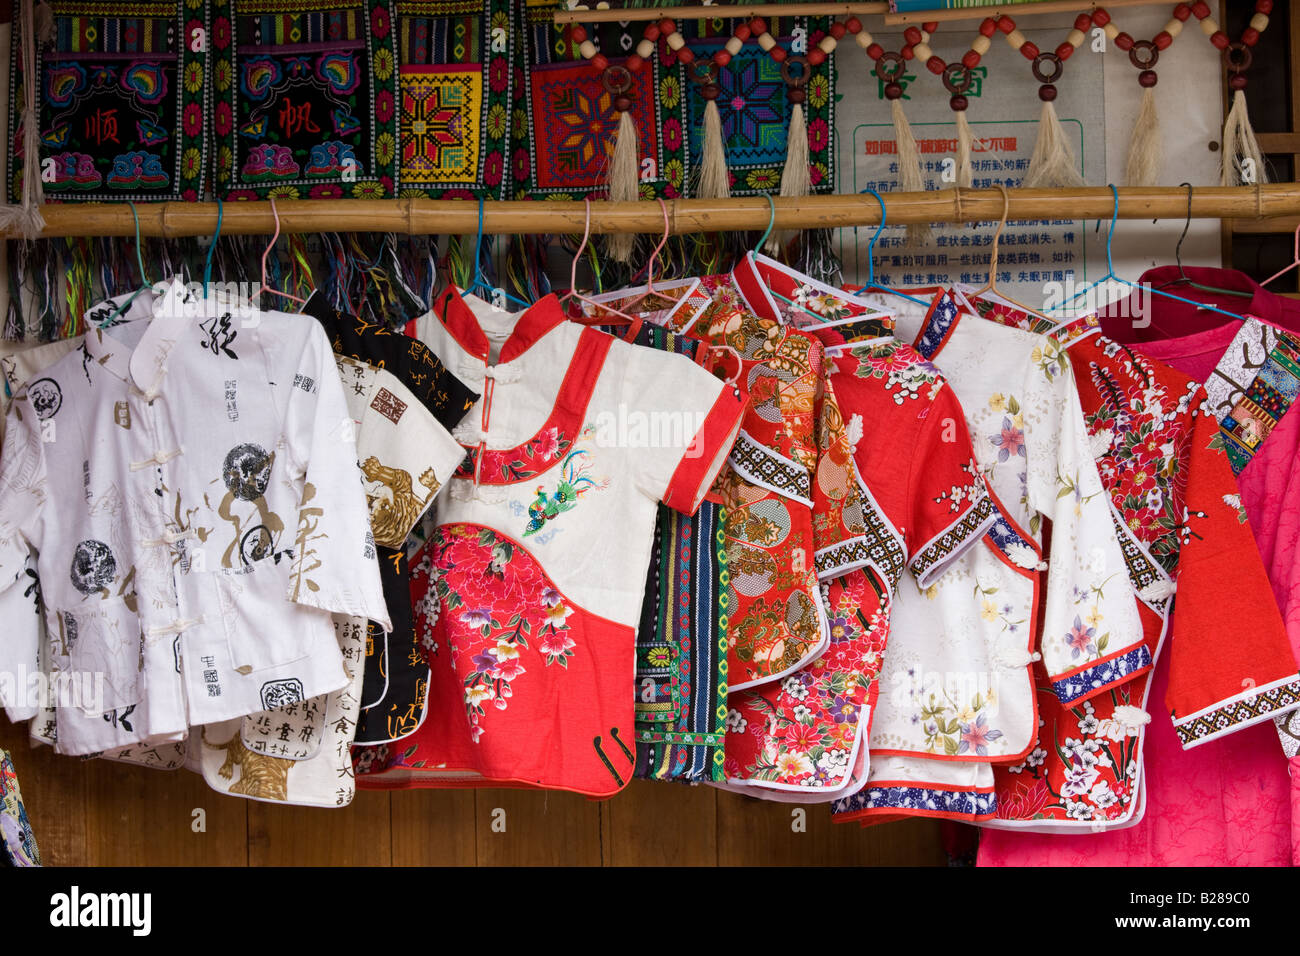 Chinesische Küche In Der Nähe Silk Clothes Clothing Souvenirs Stockfotos And Silk Clothes